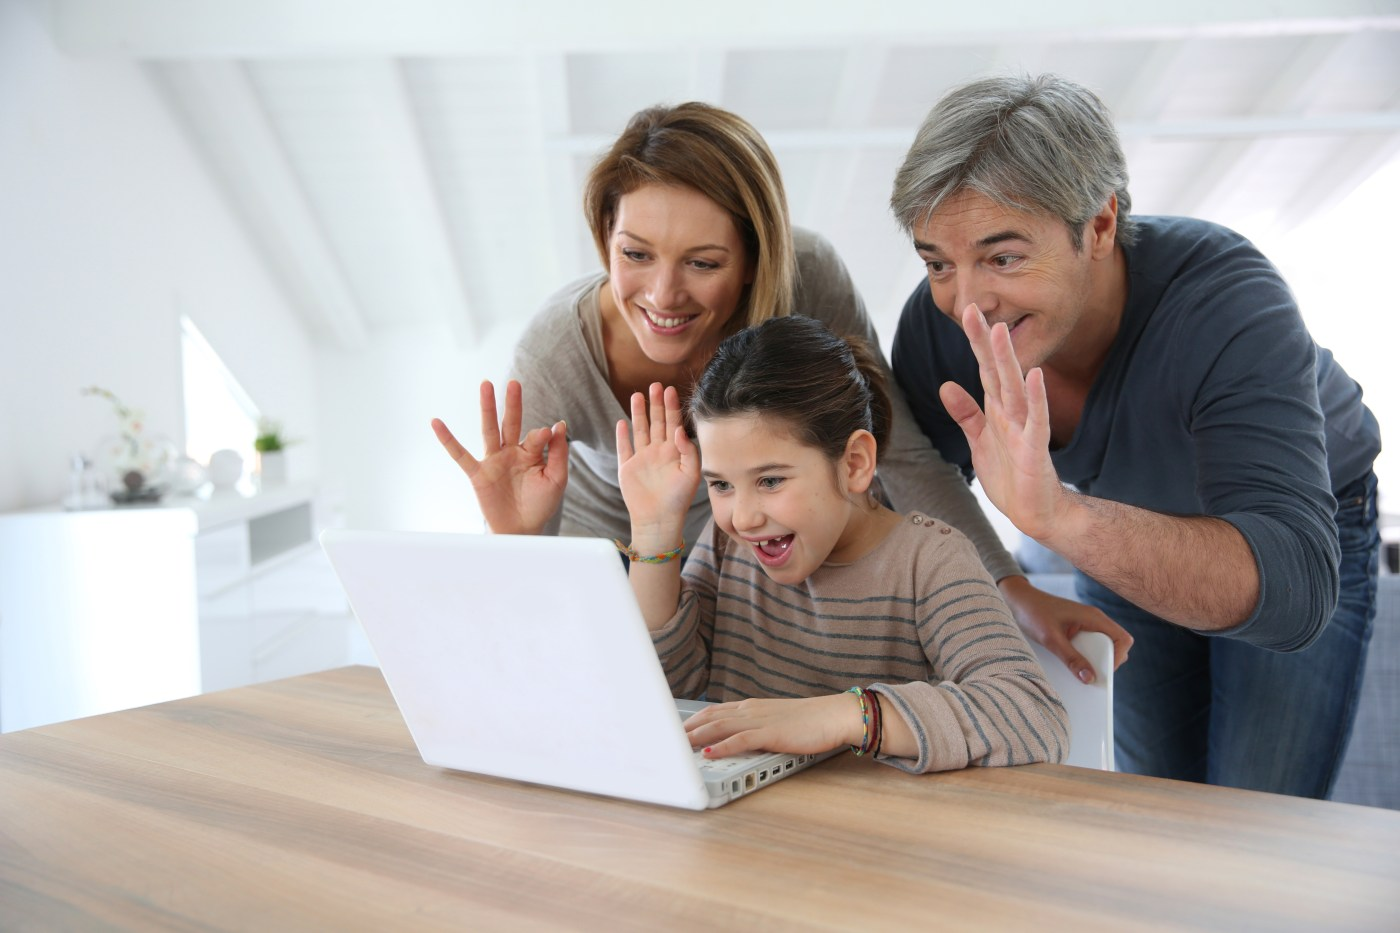 Family Waving at Computer Screen on Call